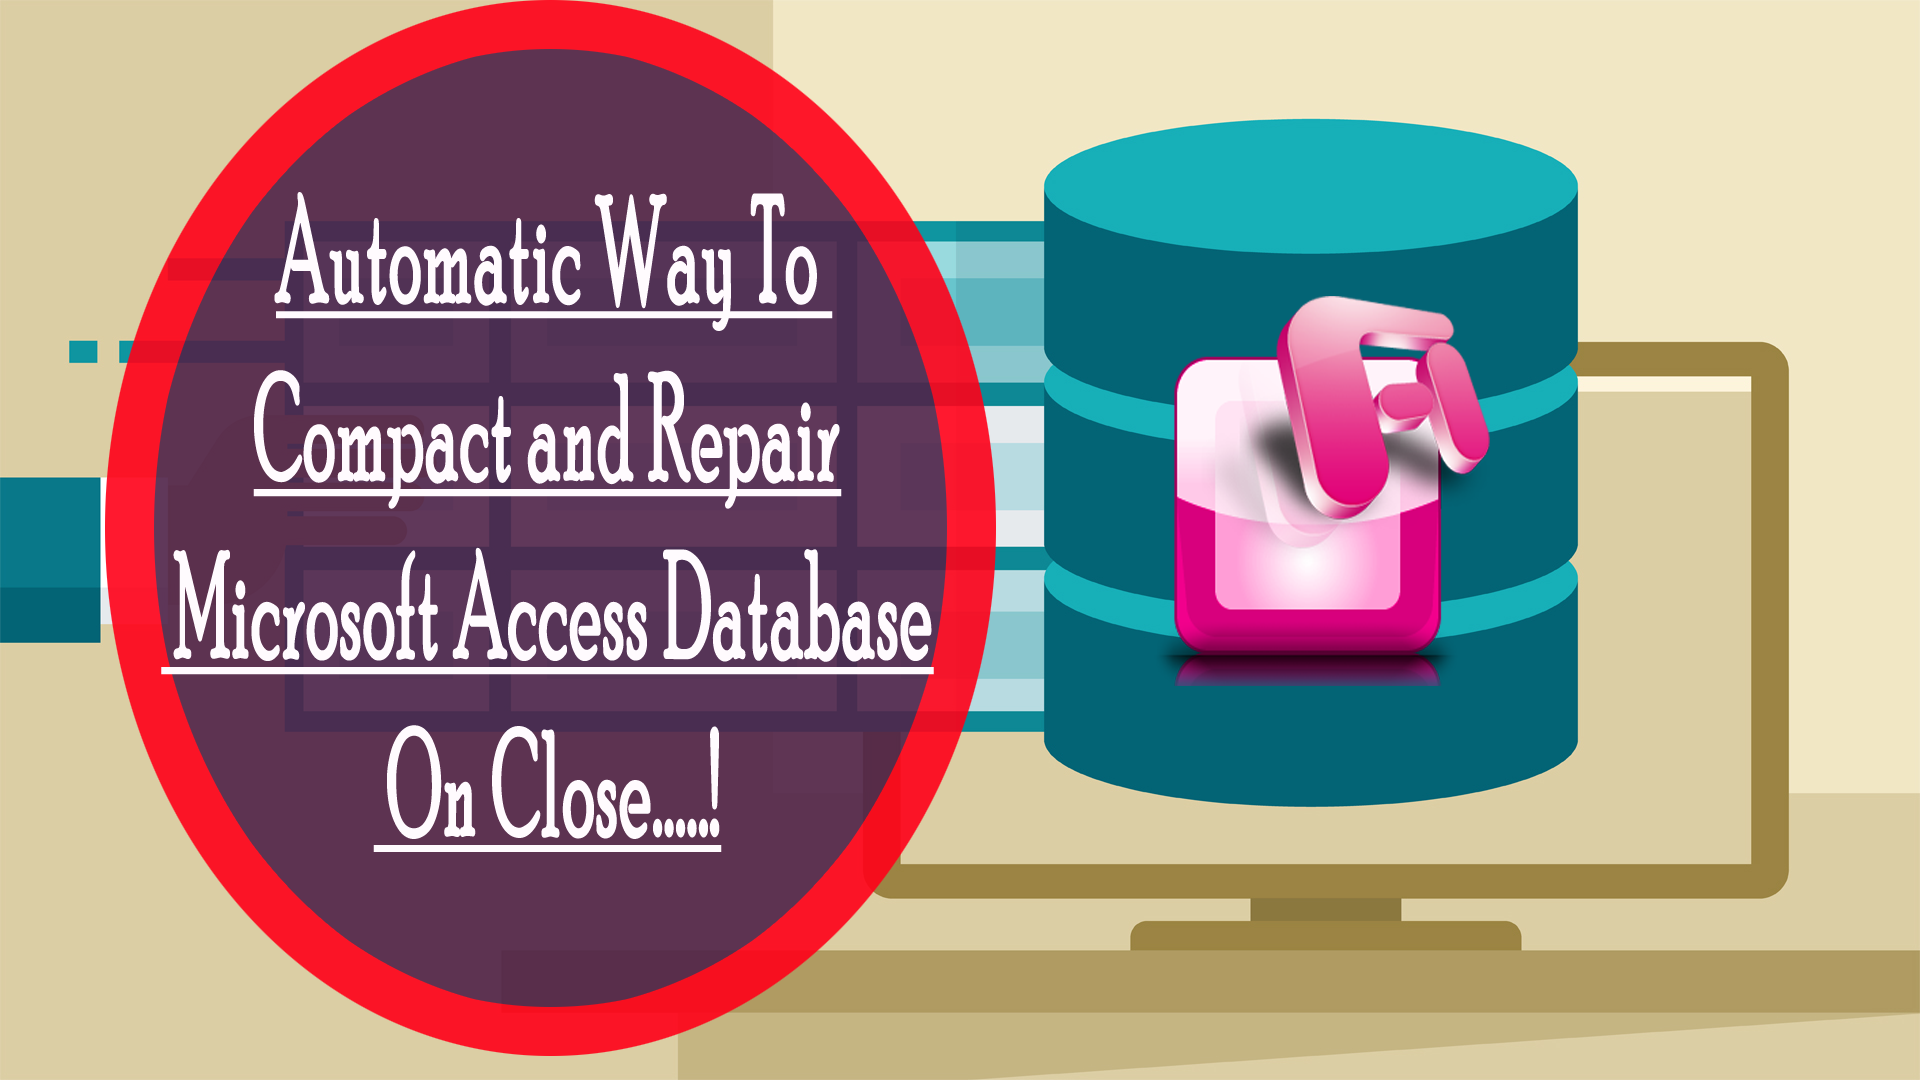 Automatic Way To Compact and Repair Microsoft Access Database On Close